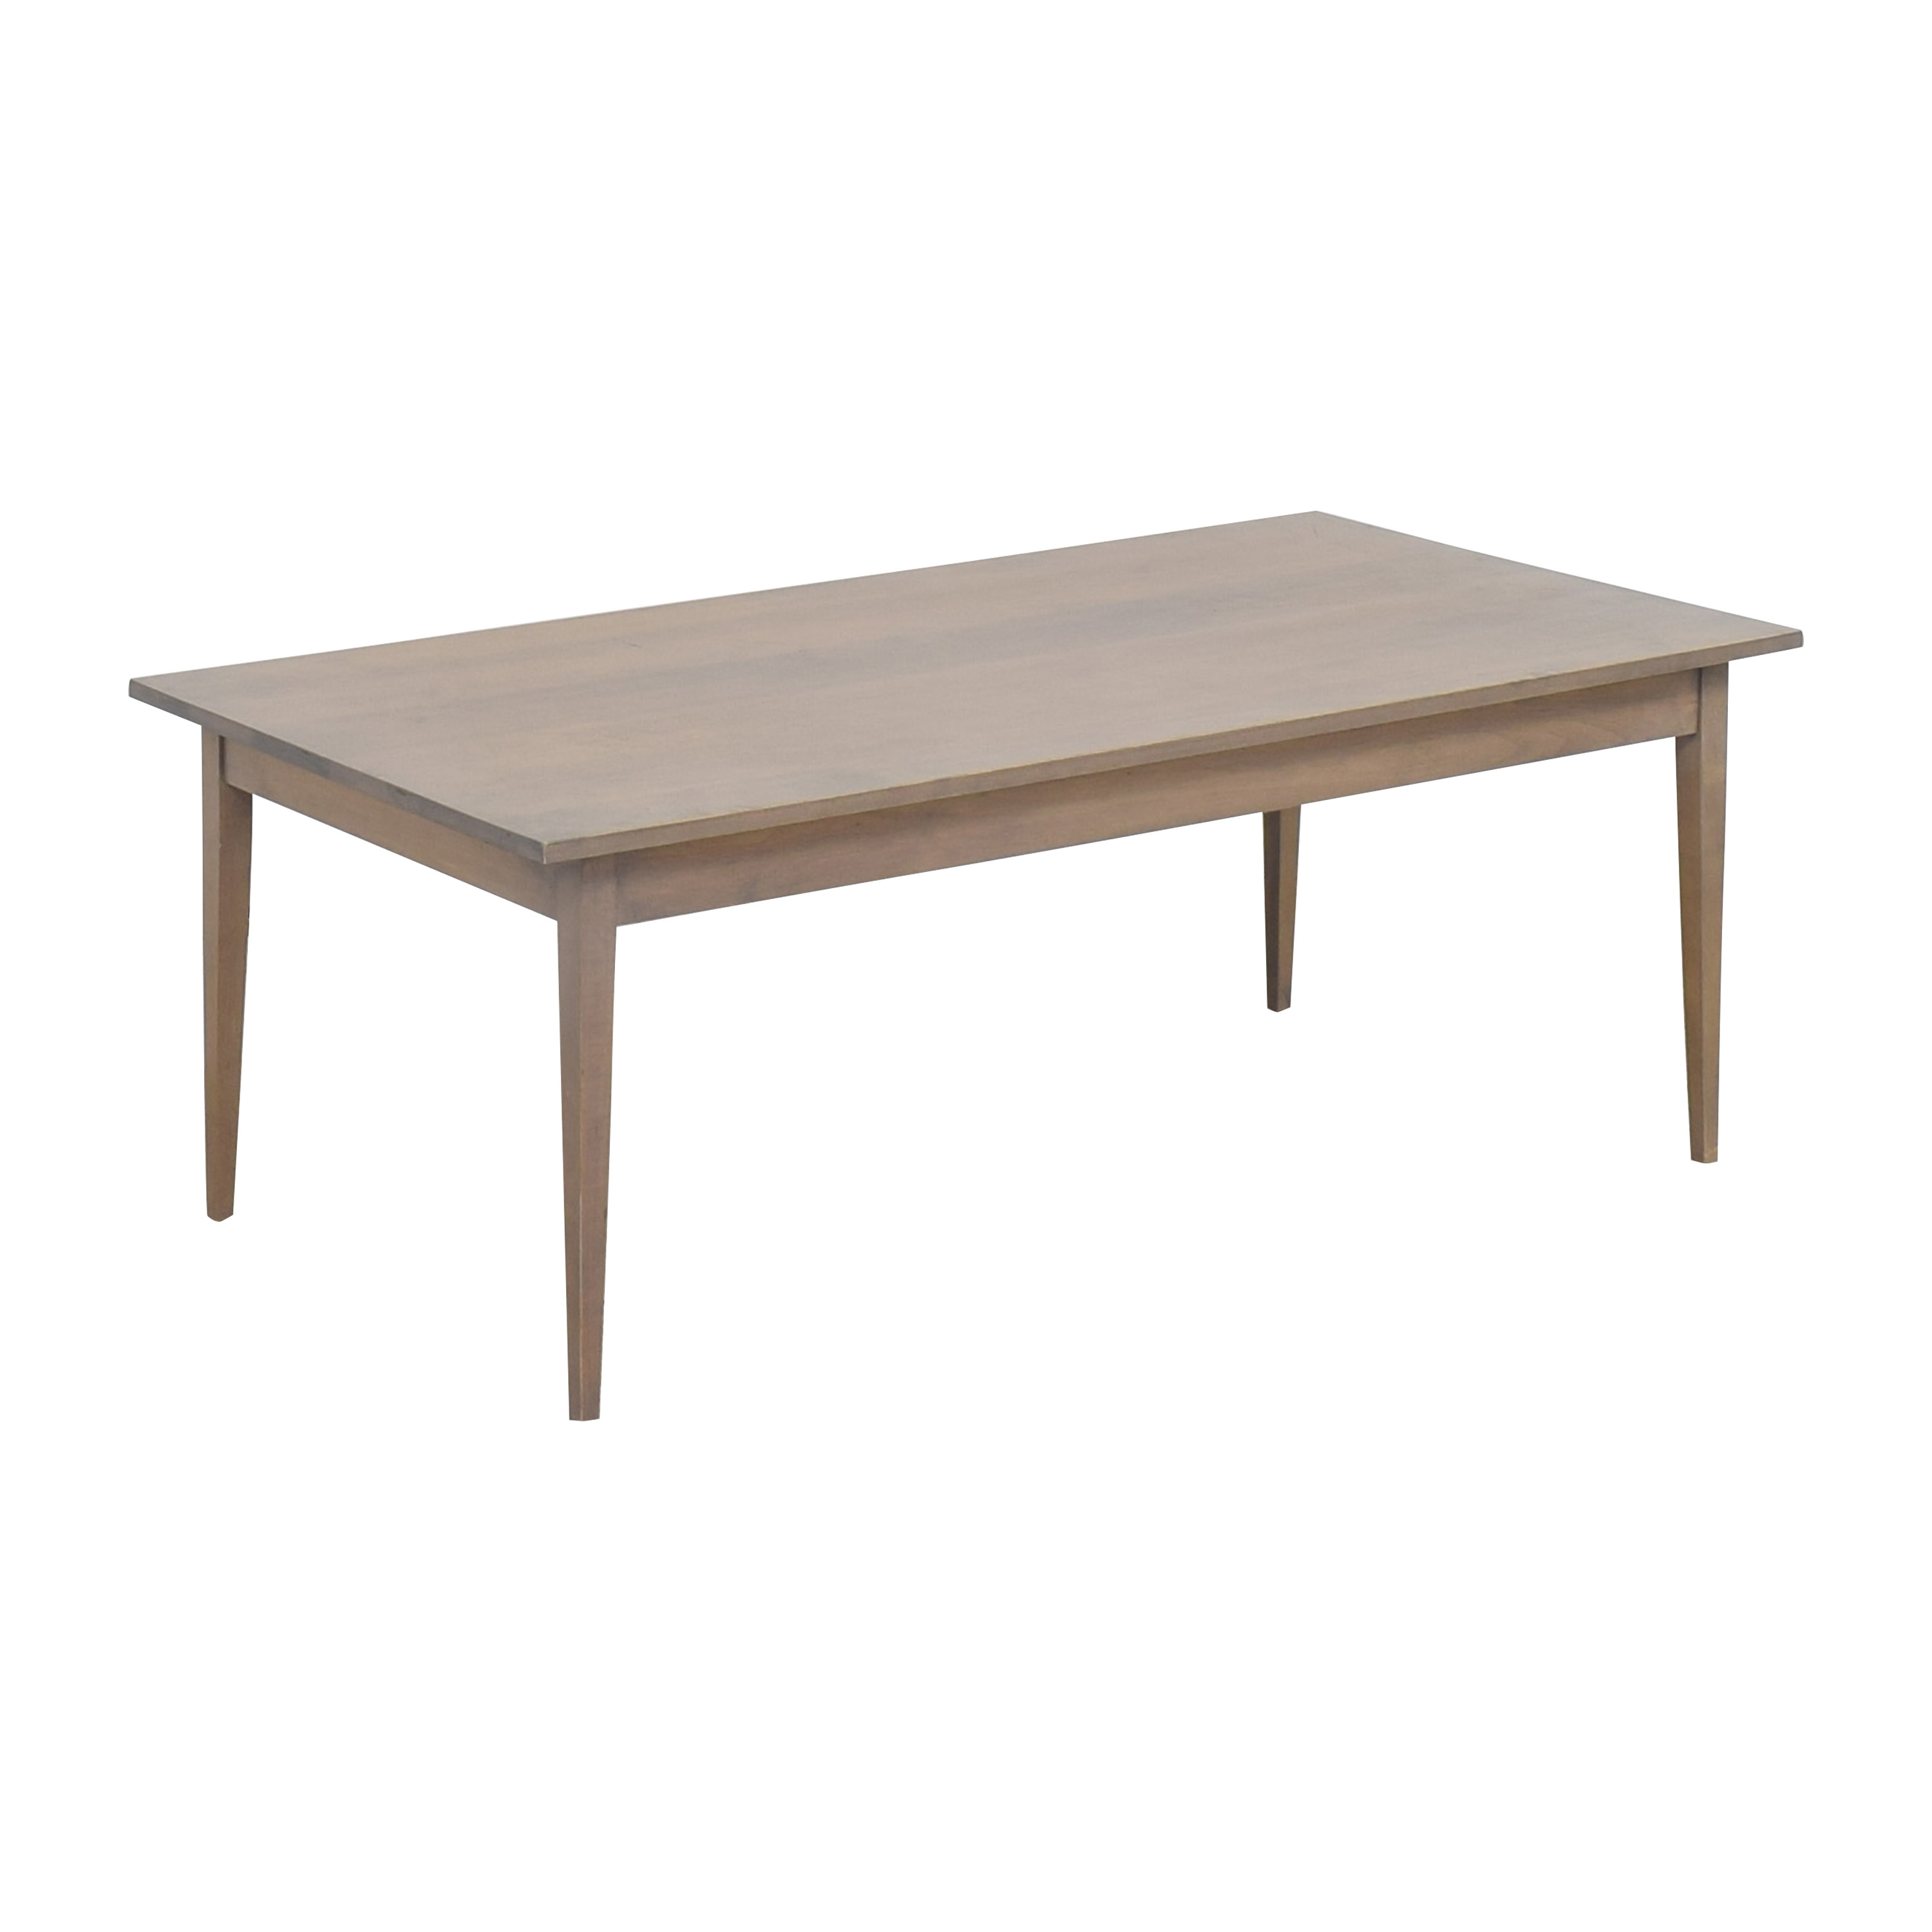 Room & Board Room & Board Handcrafted Coffee Table price